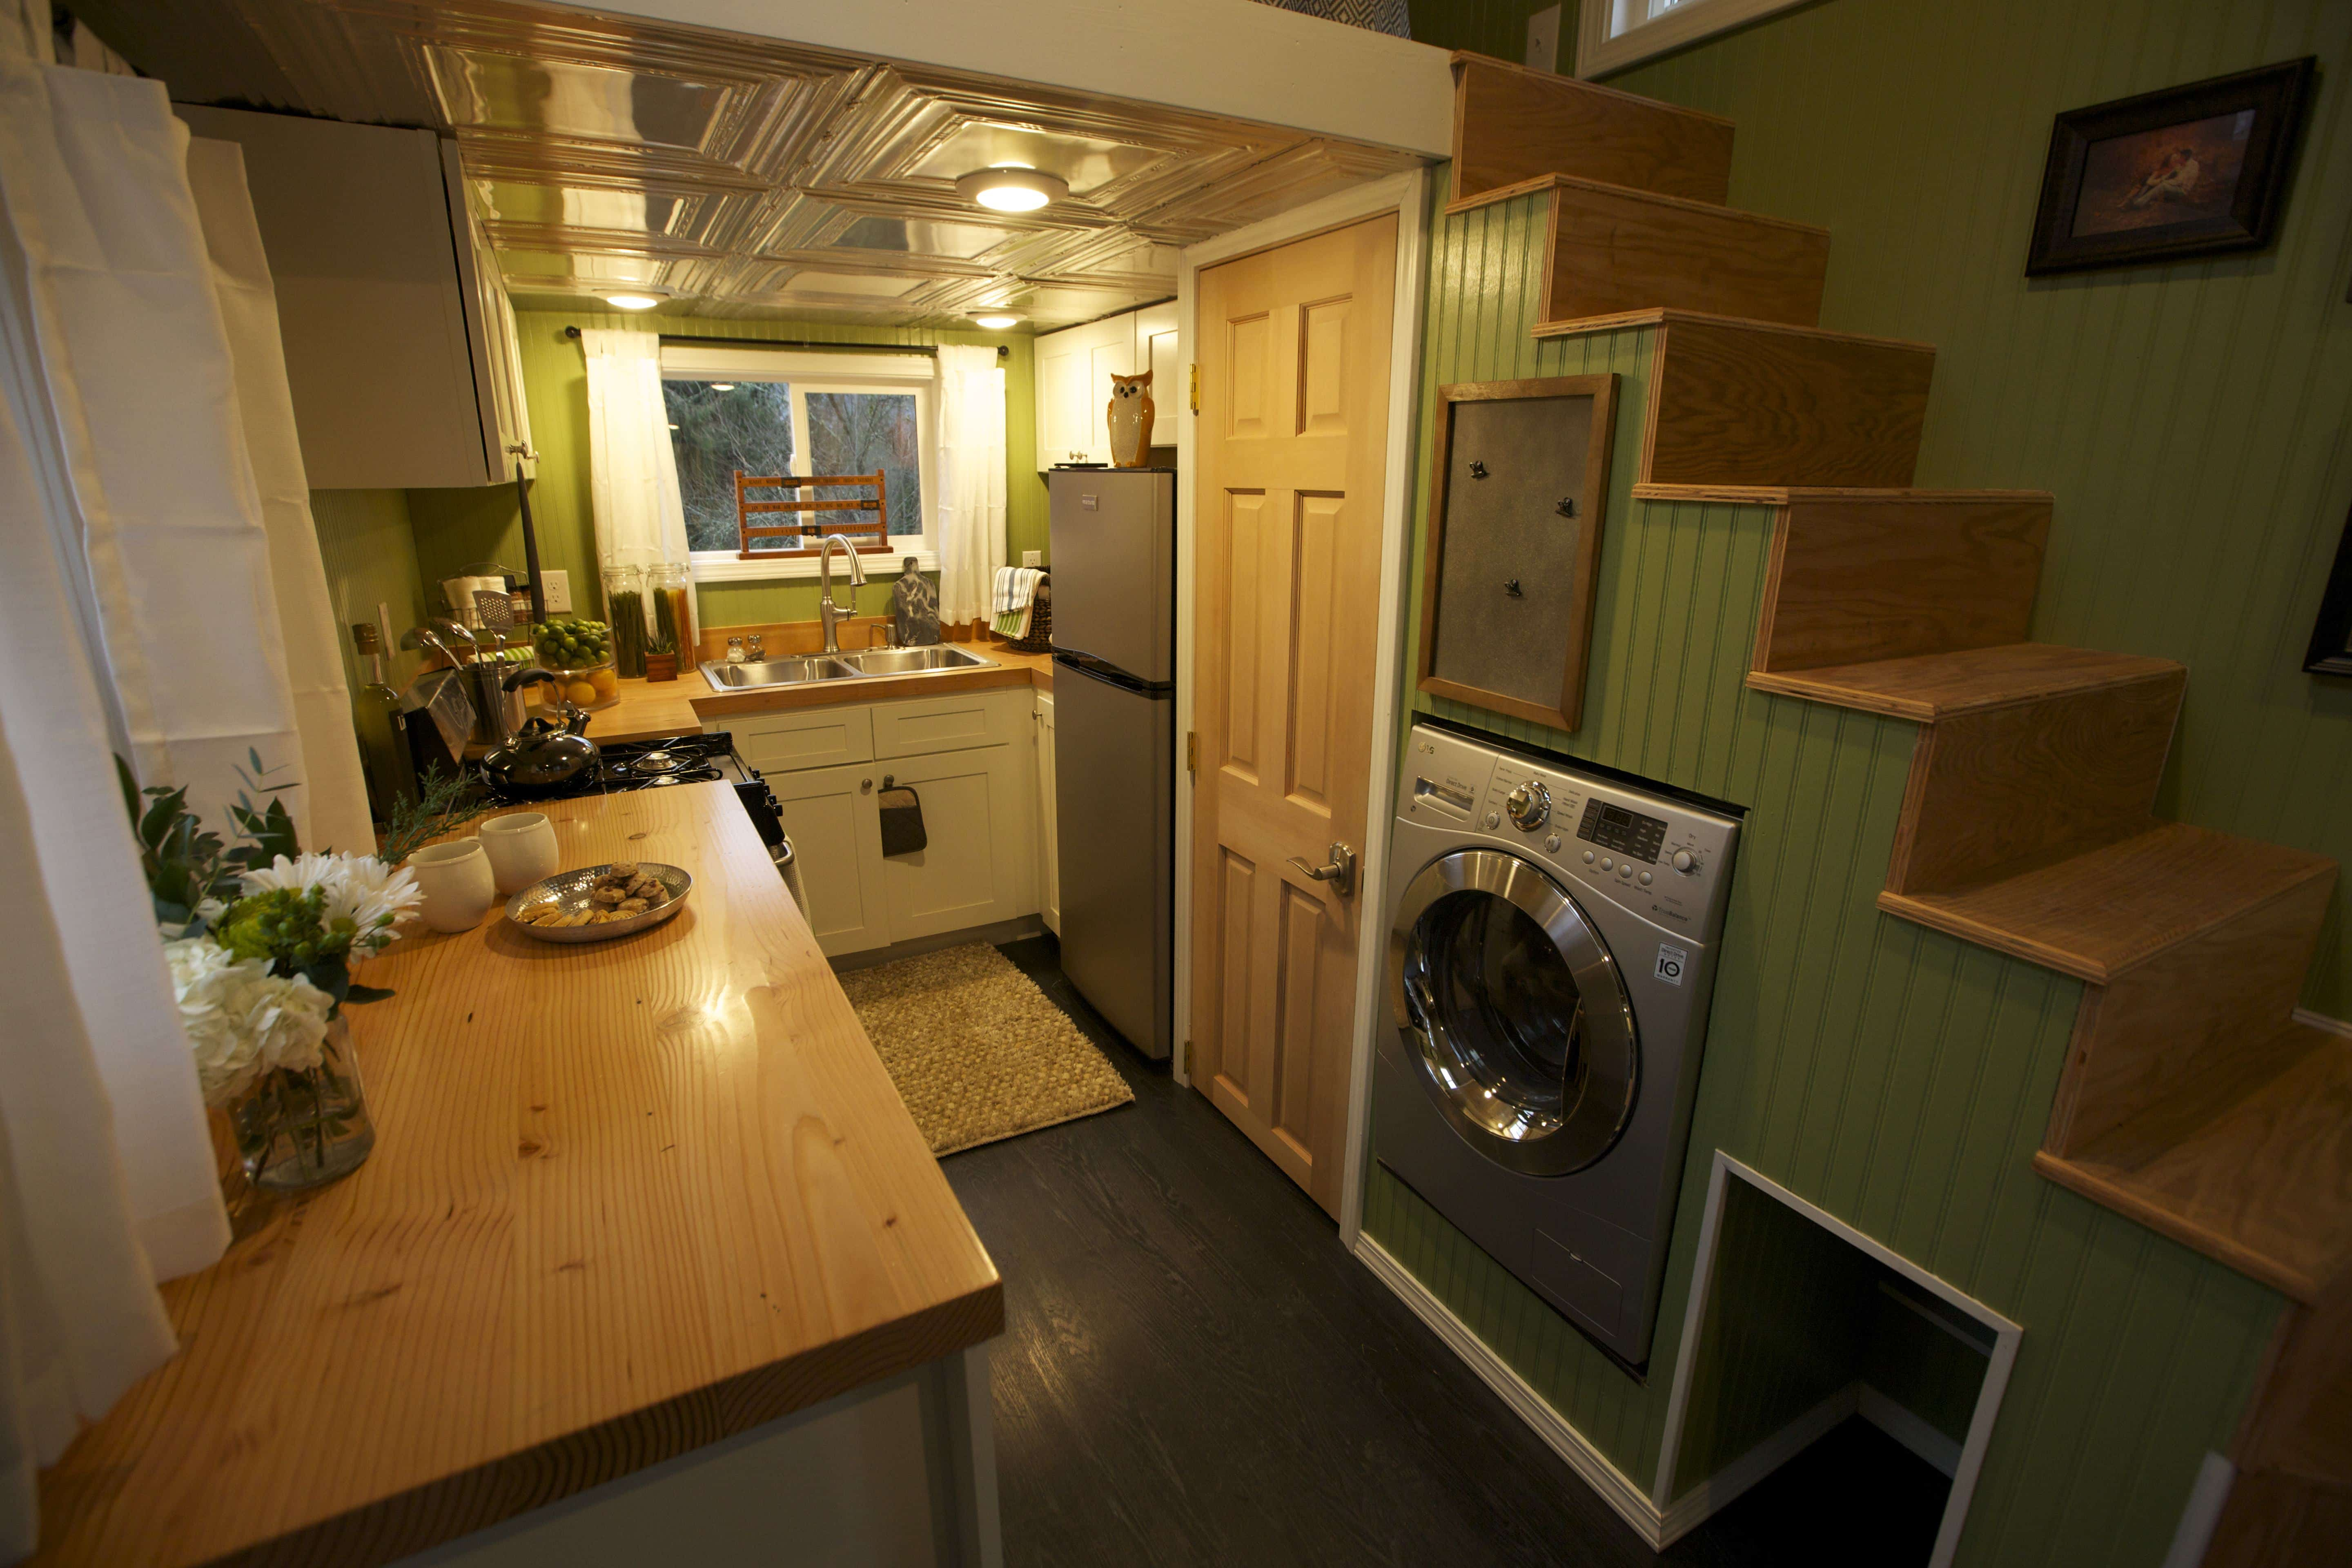 Everett  American Tiny House for Sale  American Tiny House